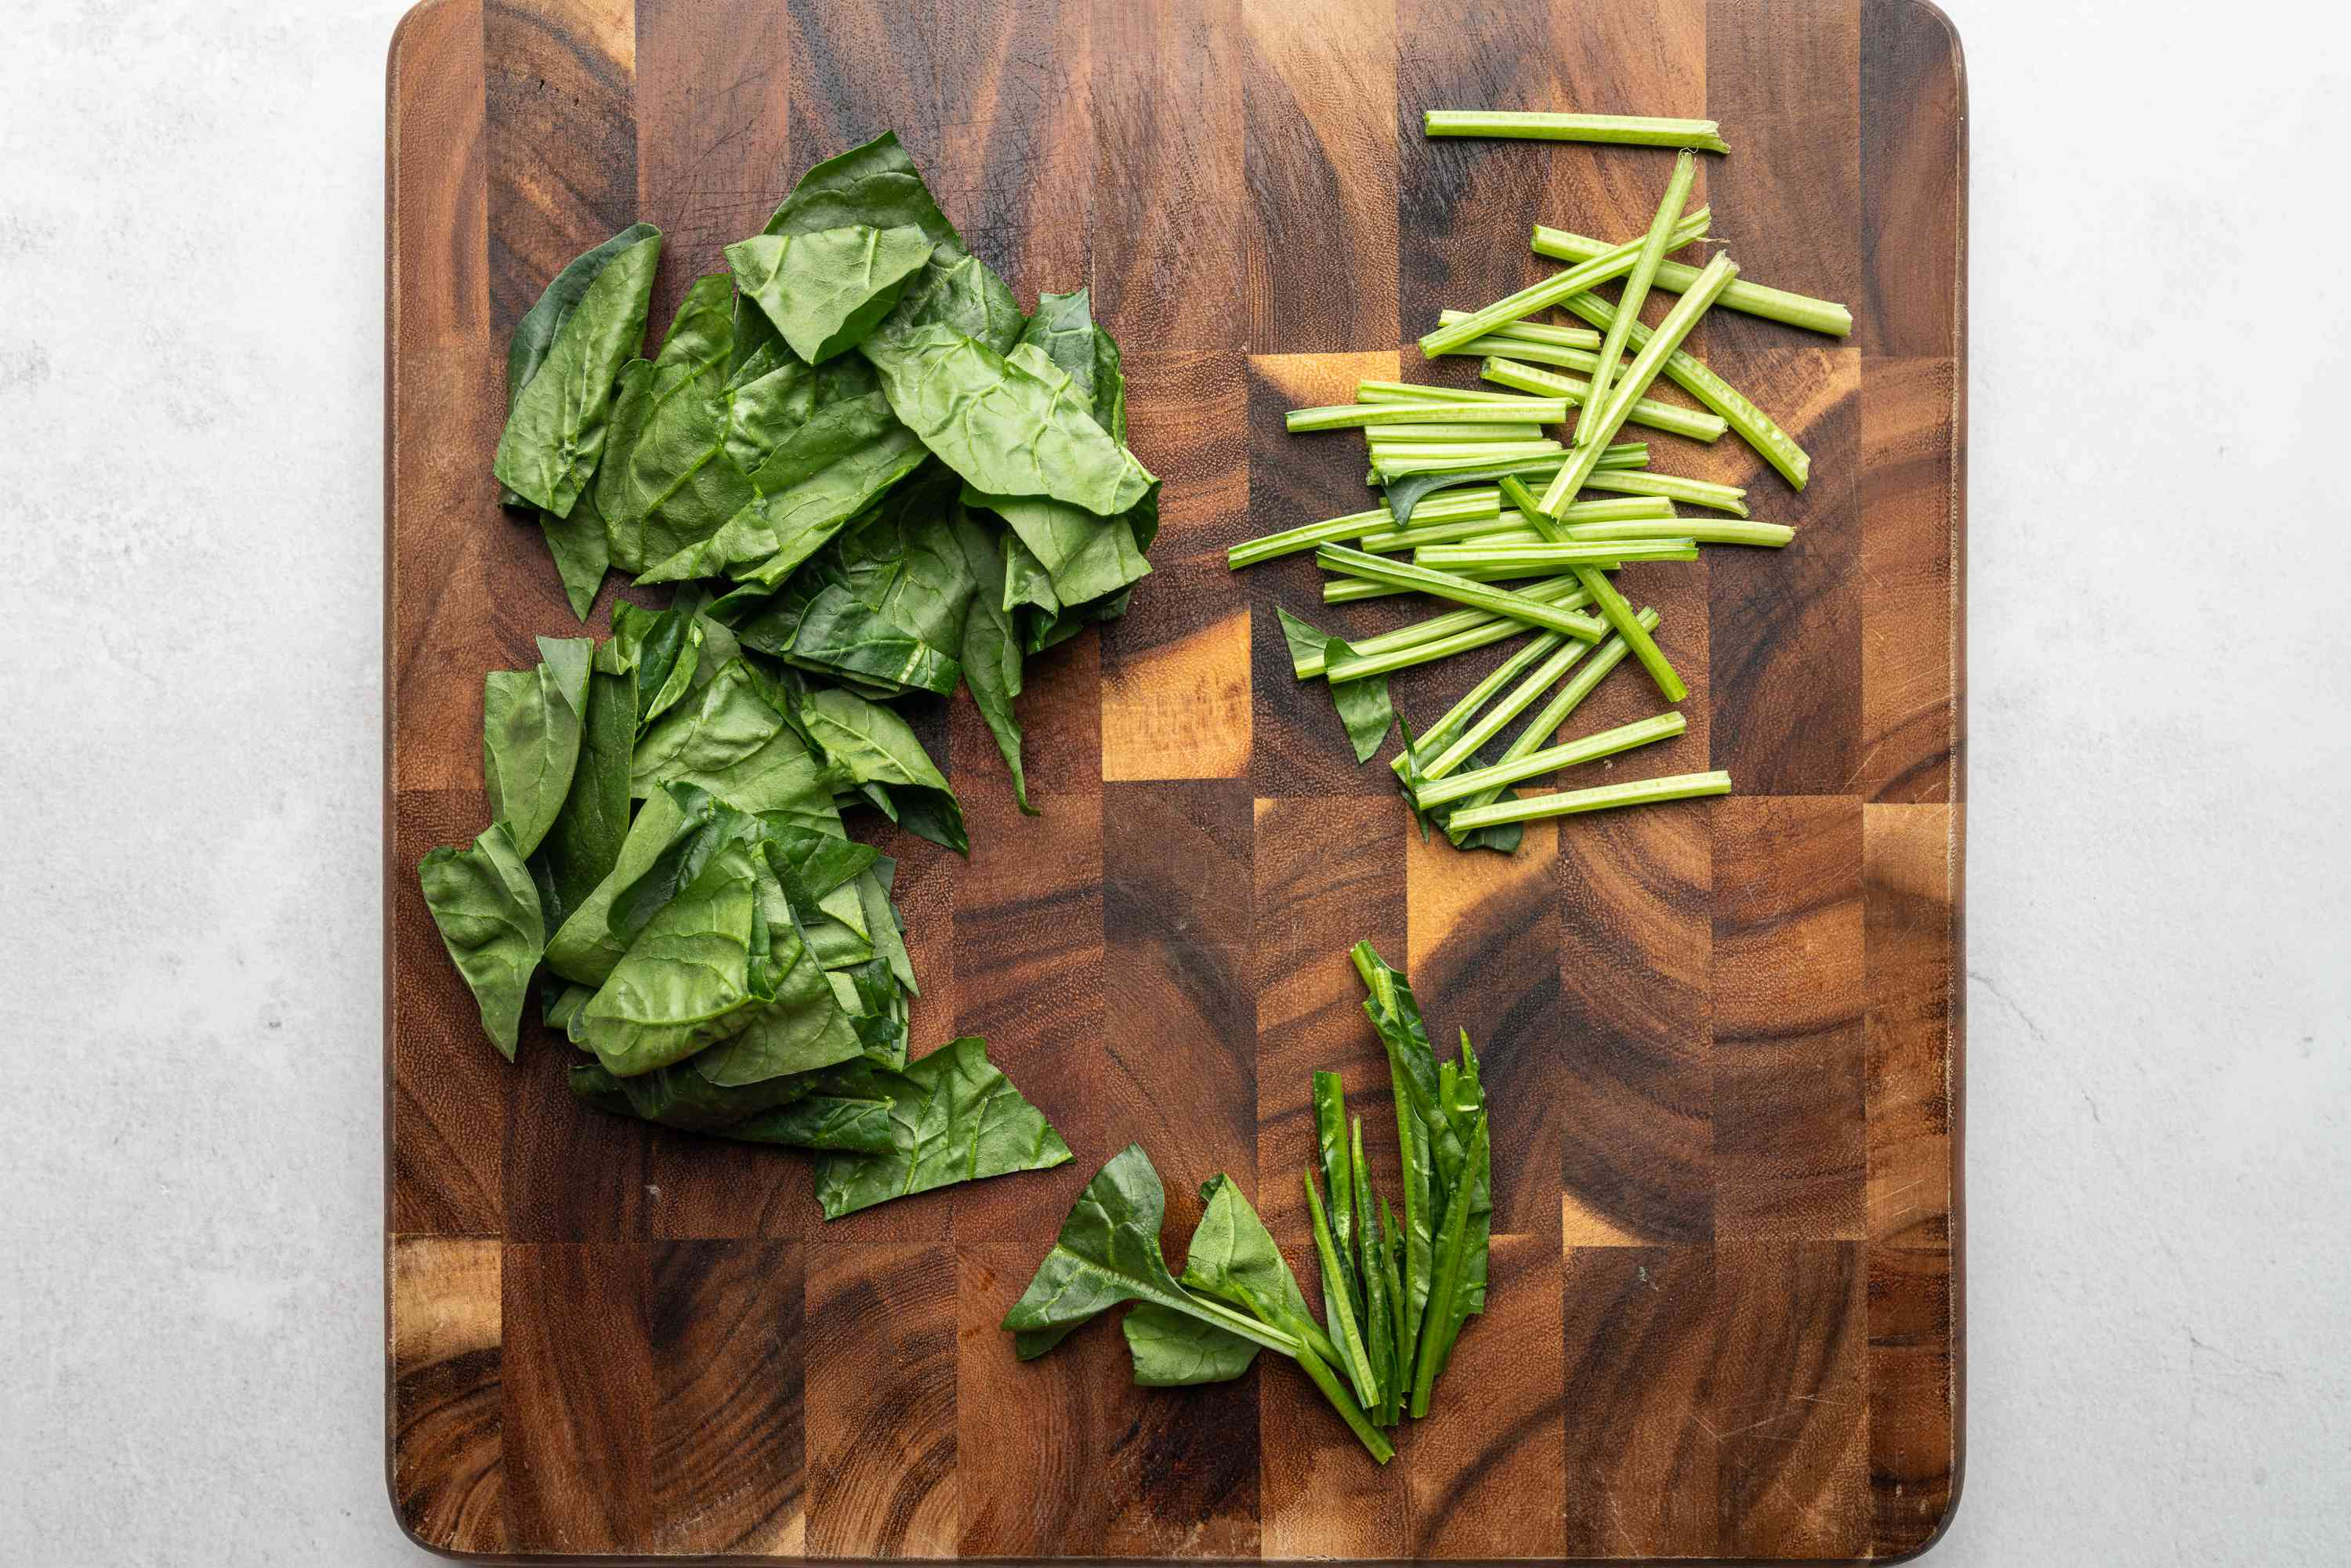 Cut the spinach into two-inch lengths